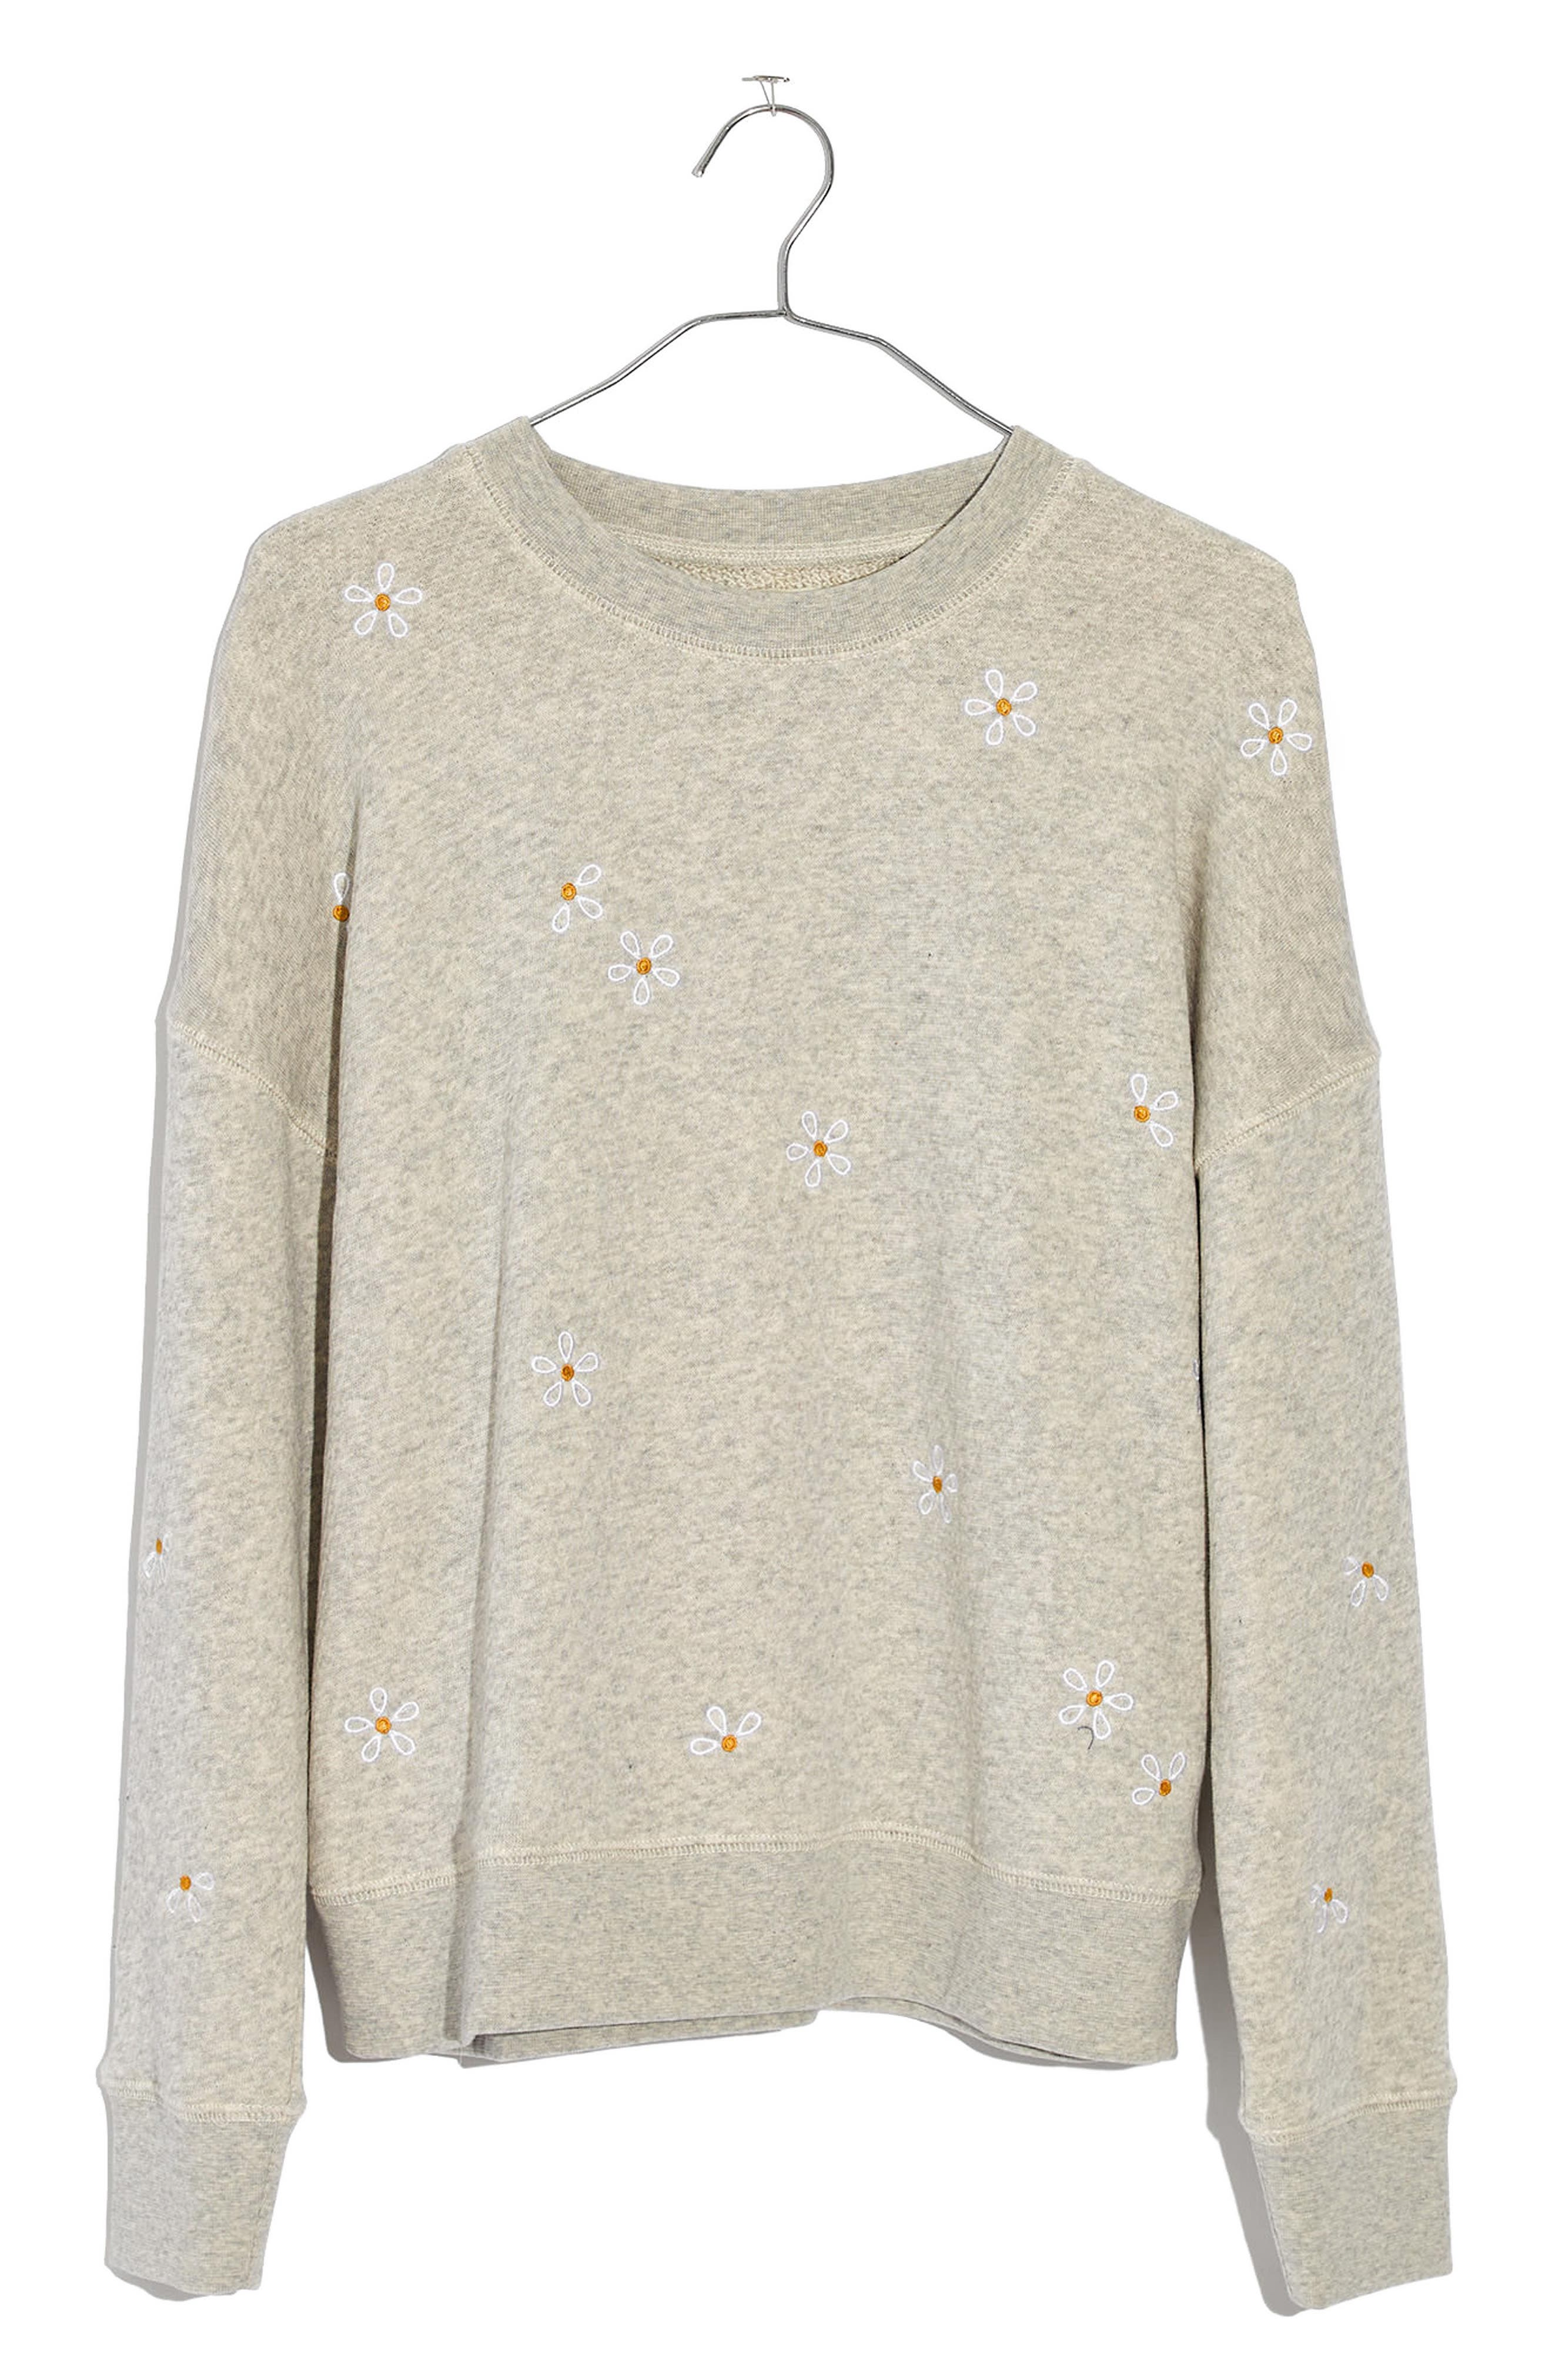 Daisy Embroidered Sweatshirt,                             Alternate thumbnail 3, color,                             020